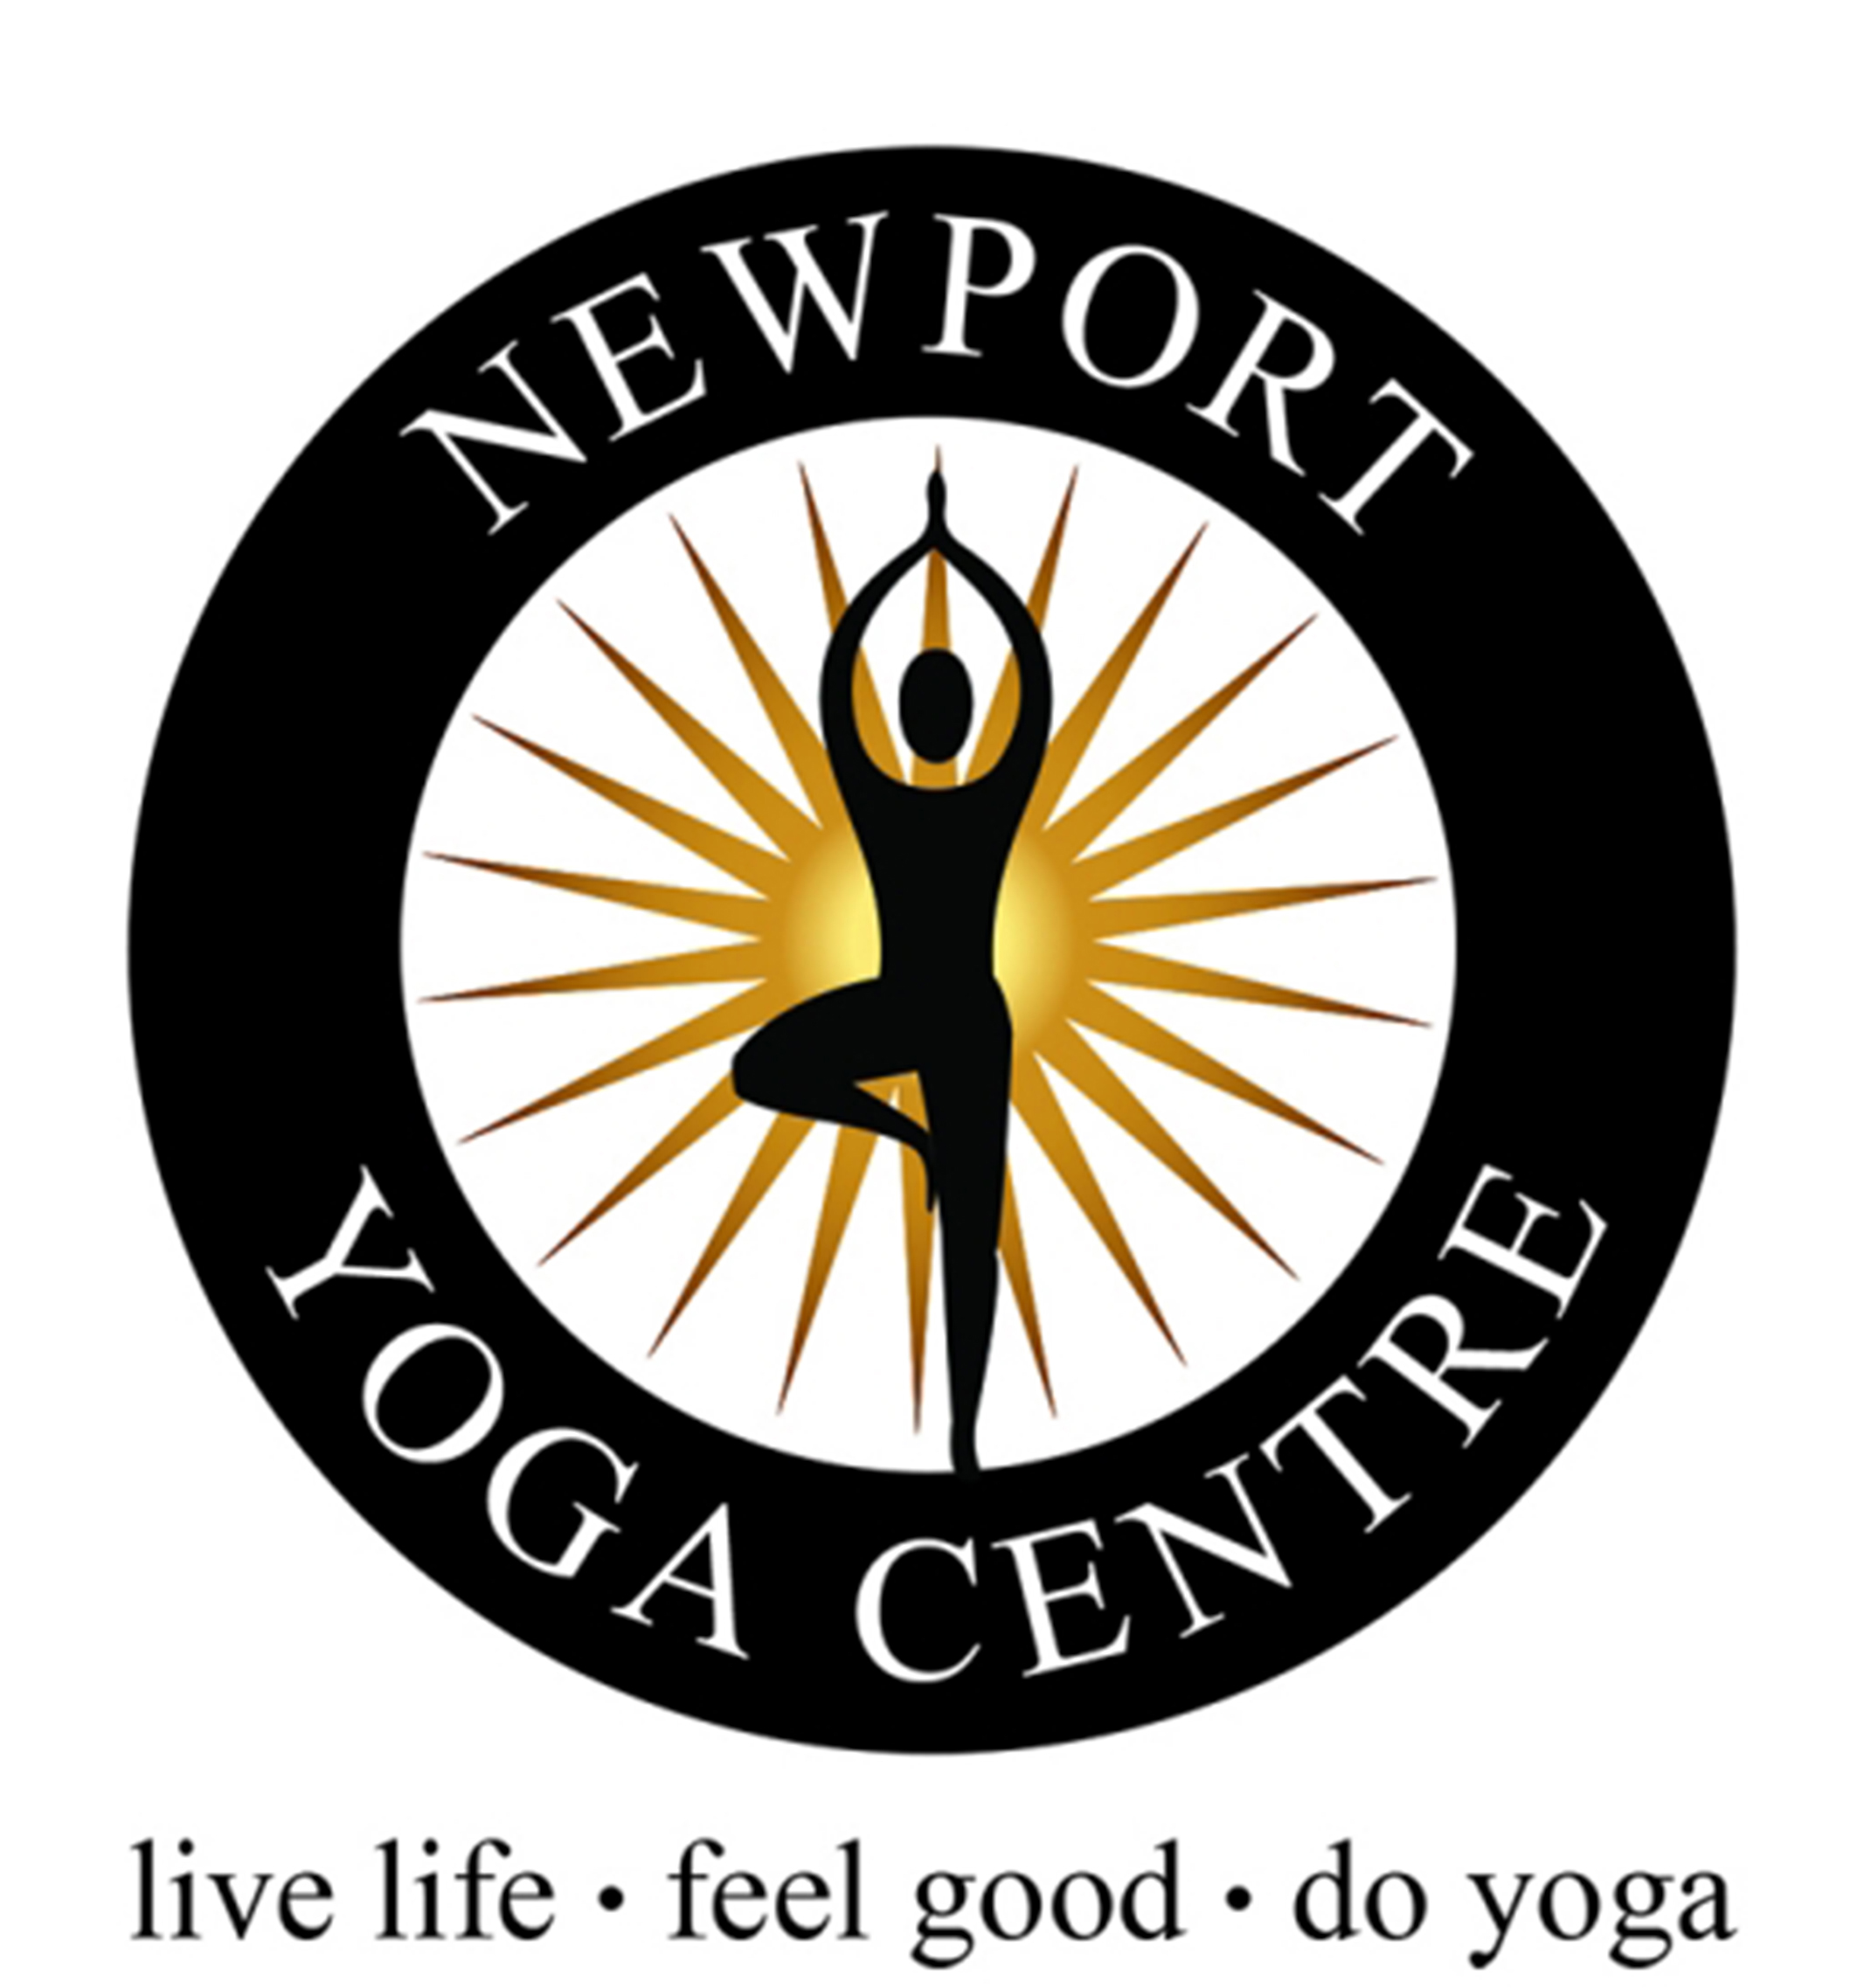 Newport Yoga Centre